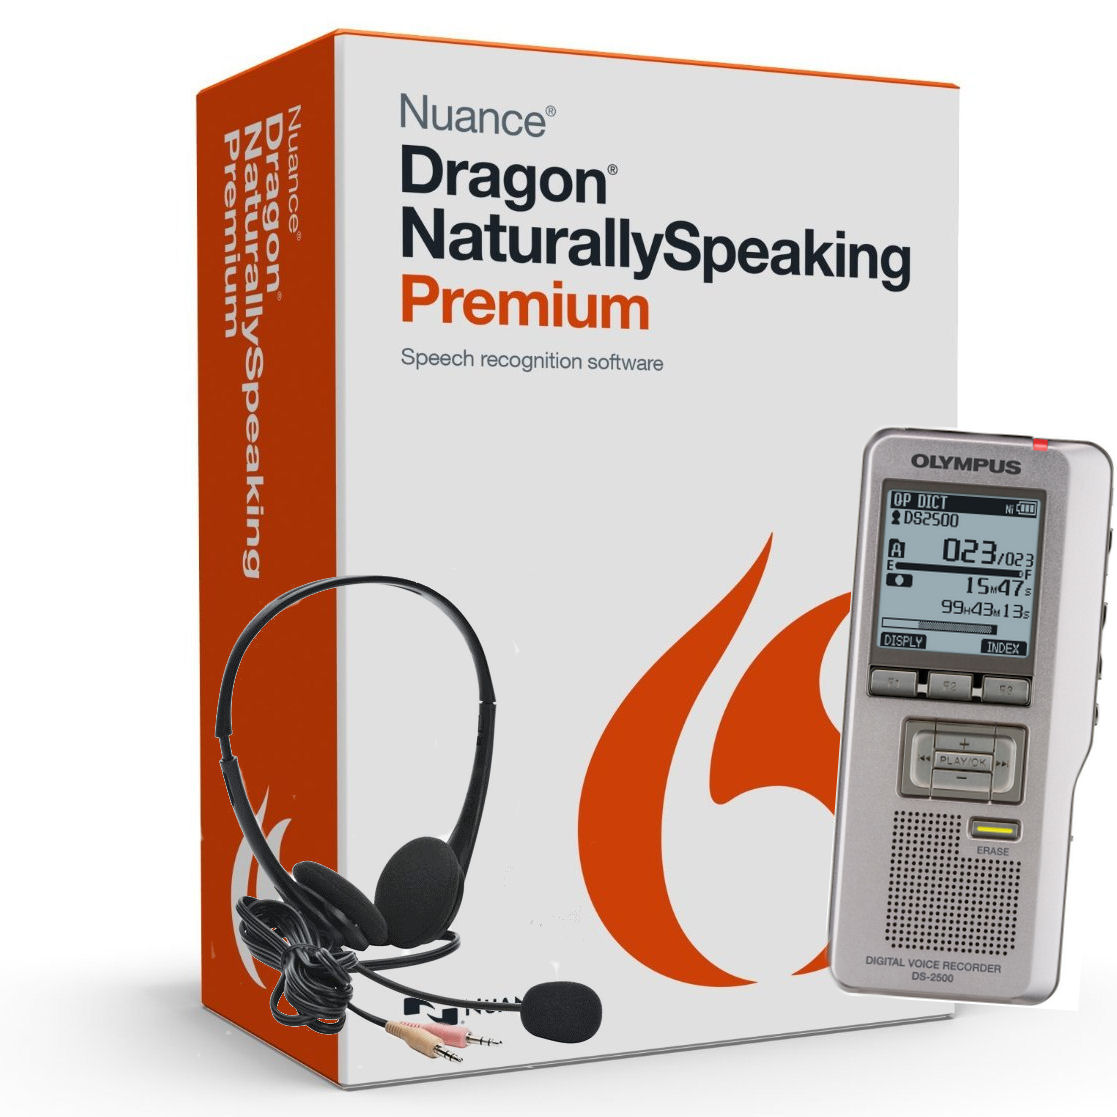 Nuance 365767 Dragon Naturally Speaking Premium Version 13 Speech Recognition Software with Olympus Expandable 2 GB Digital Voice Recorder